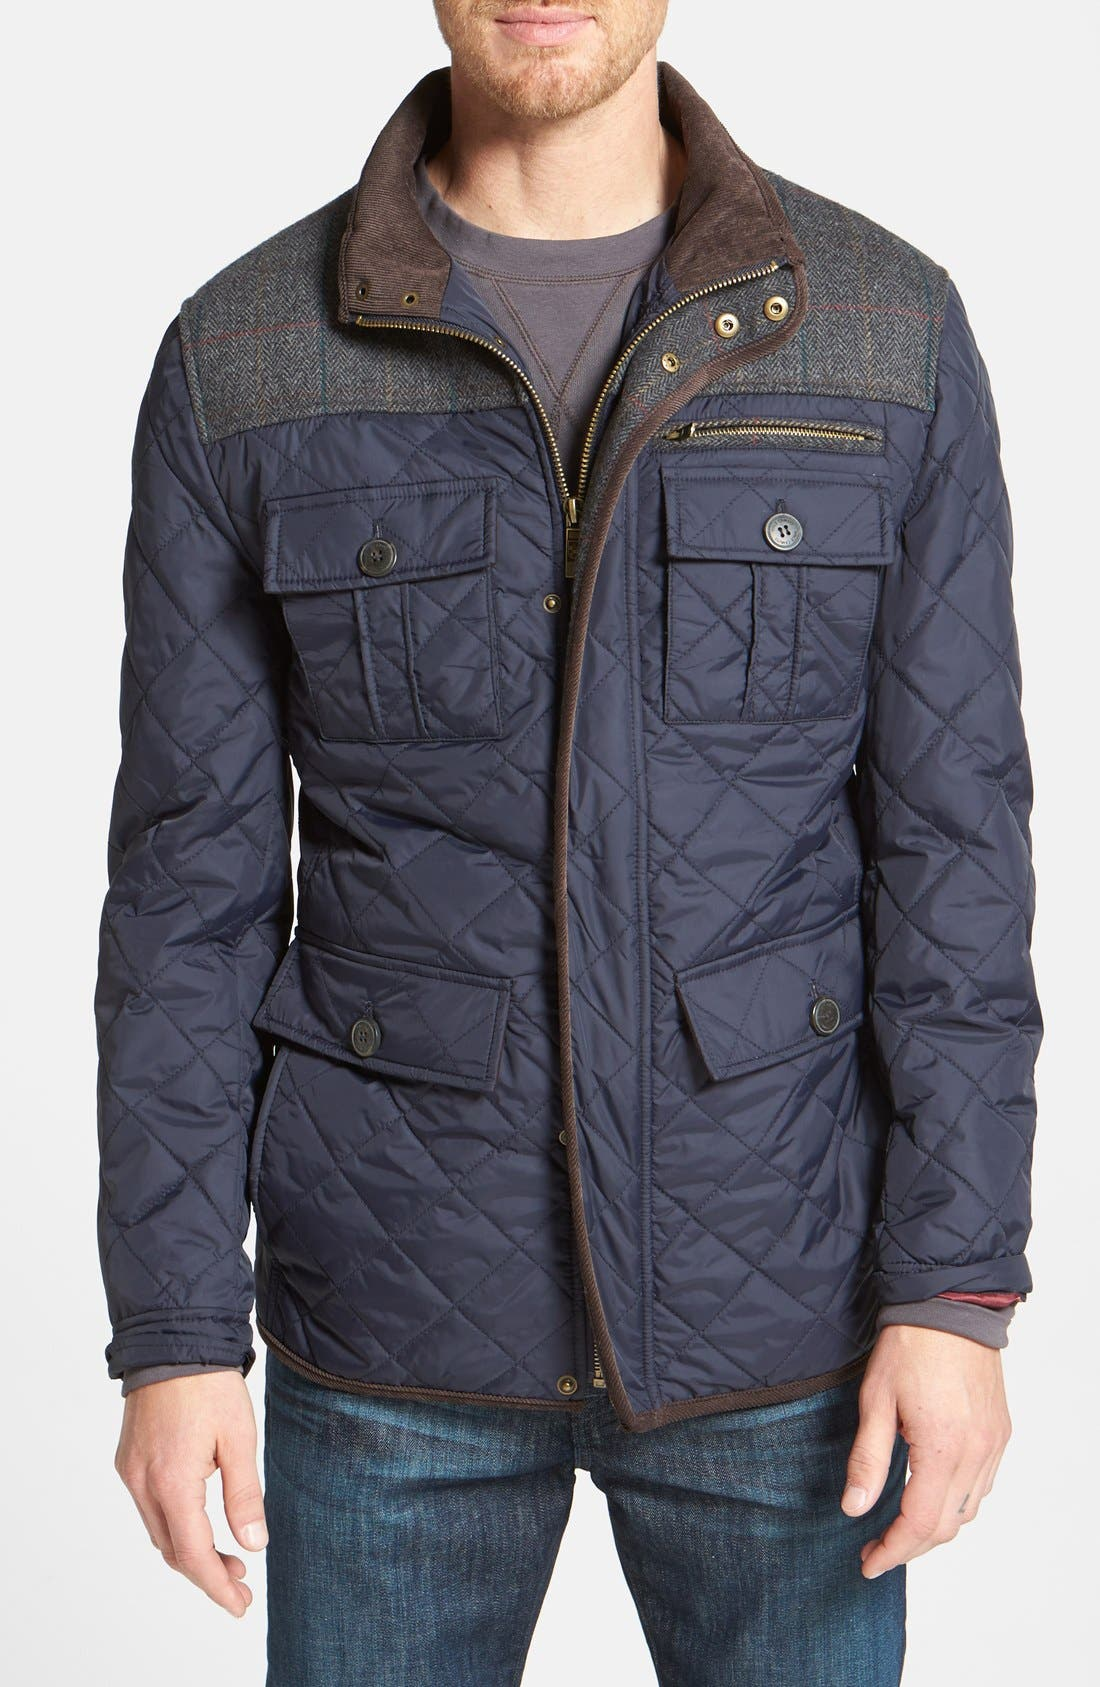 VINCE CAMUTO, Diamond Quilted Full Zip Jacket, Main thumbnail 1, color, NAVY